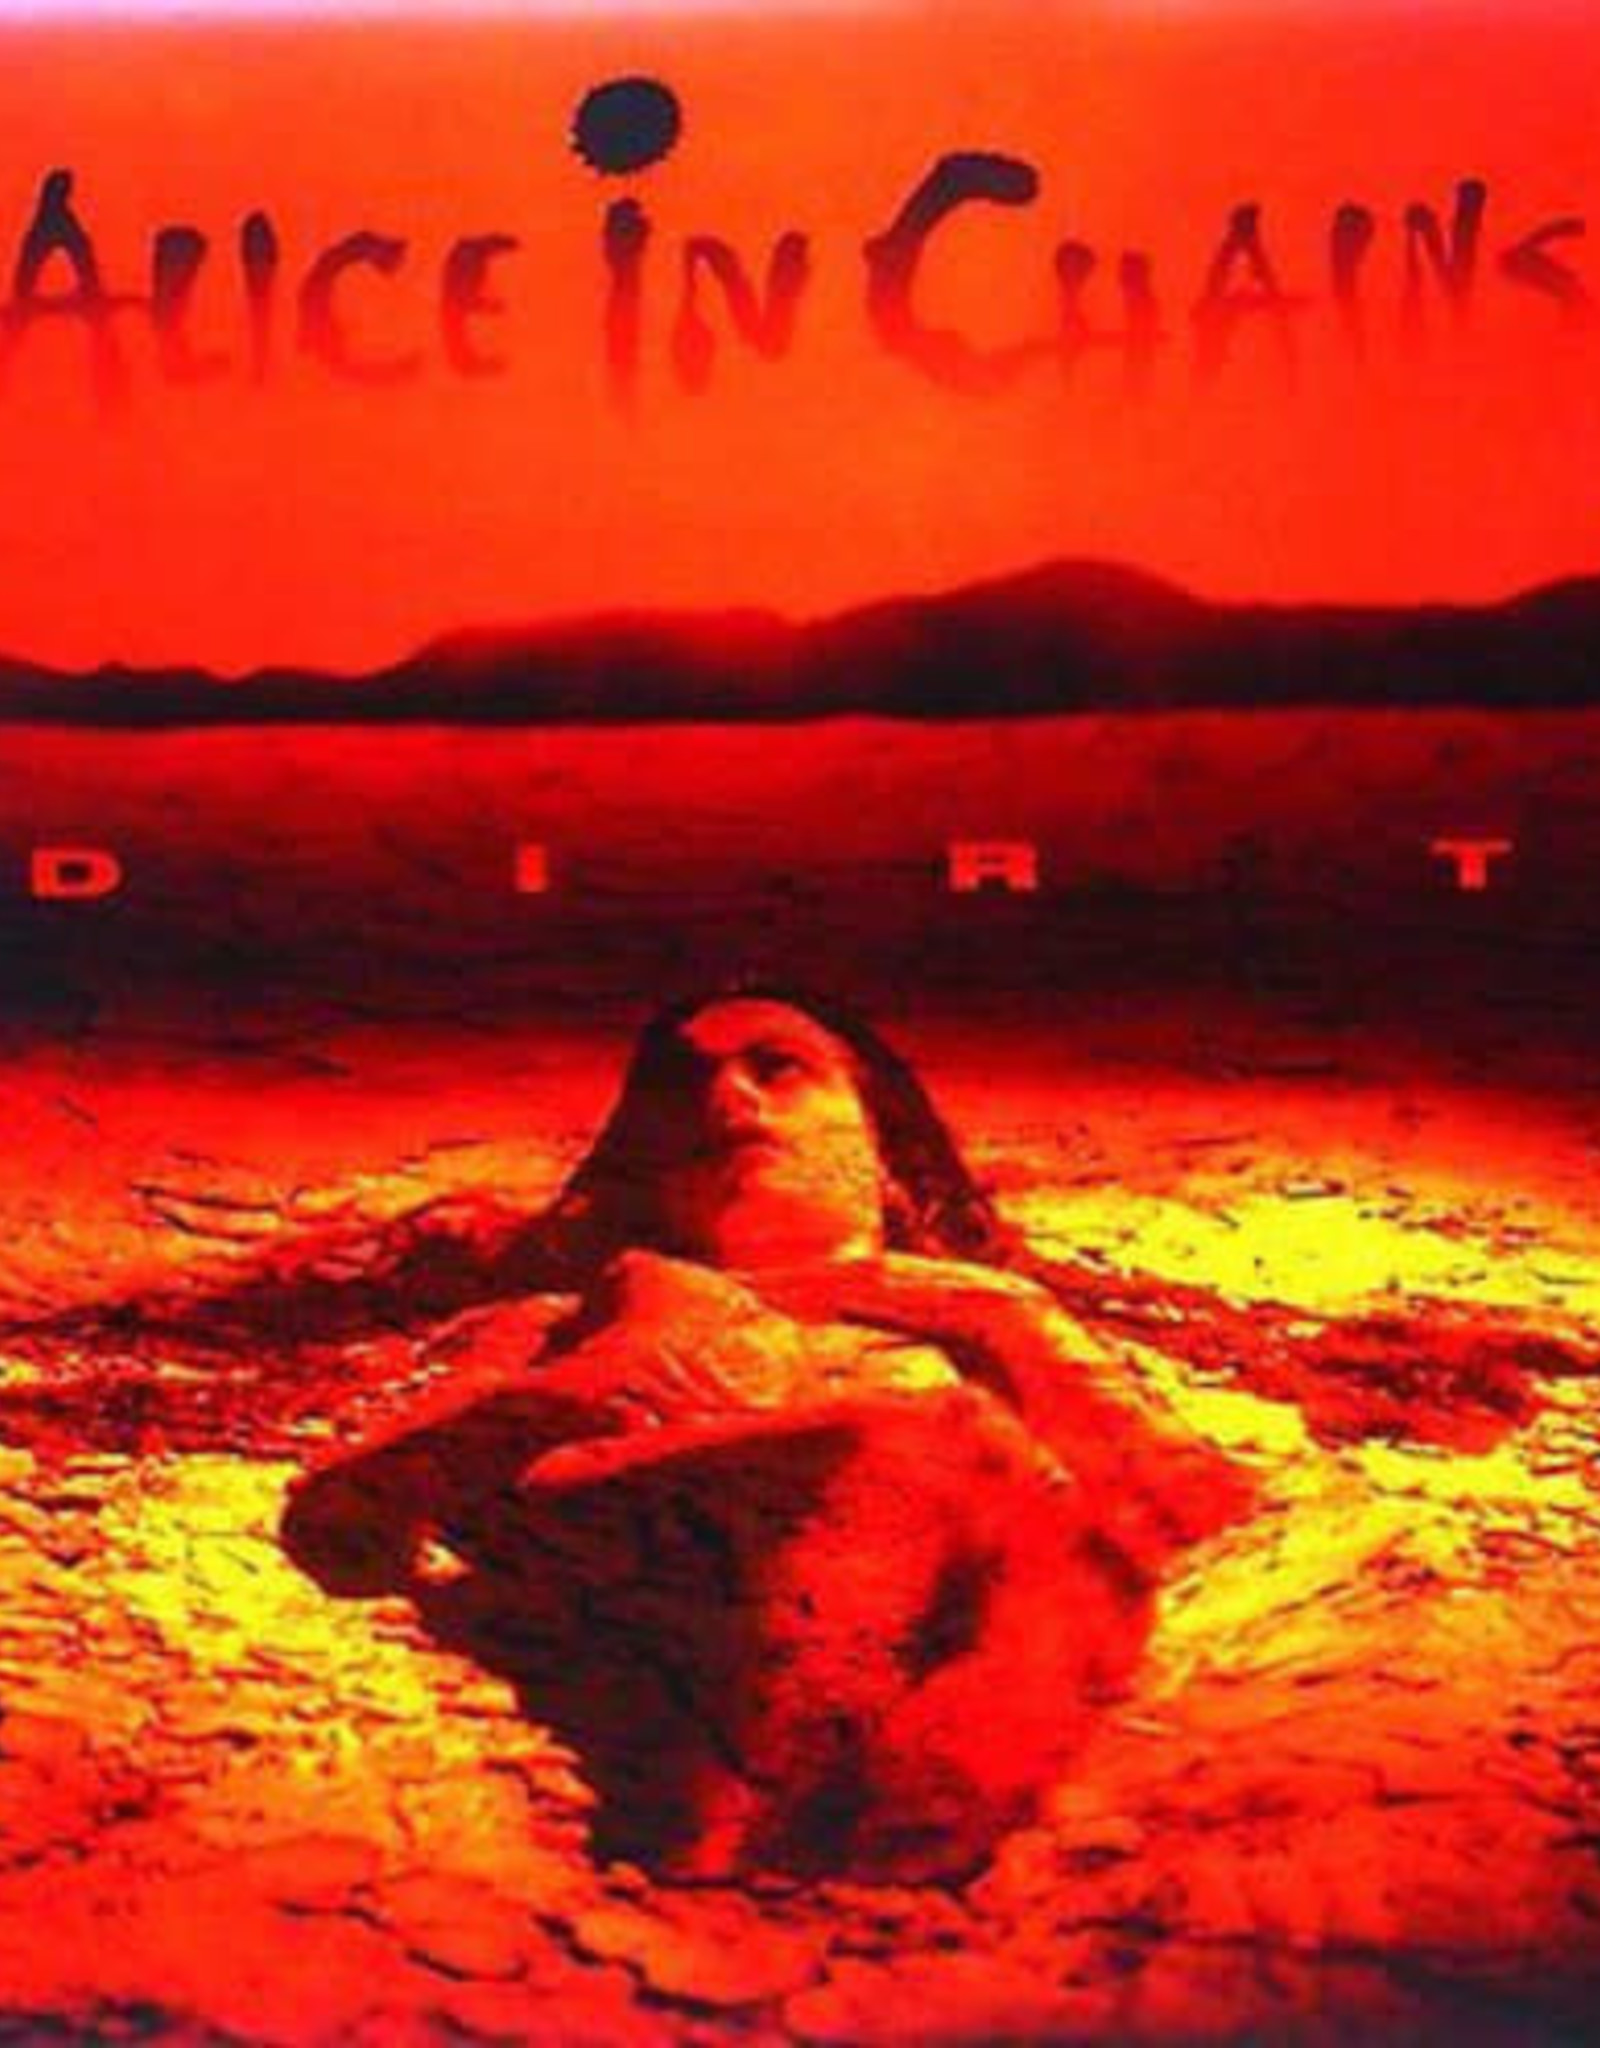 ALICE IN CHAINS / DIRT (180g)